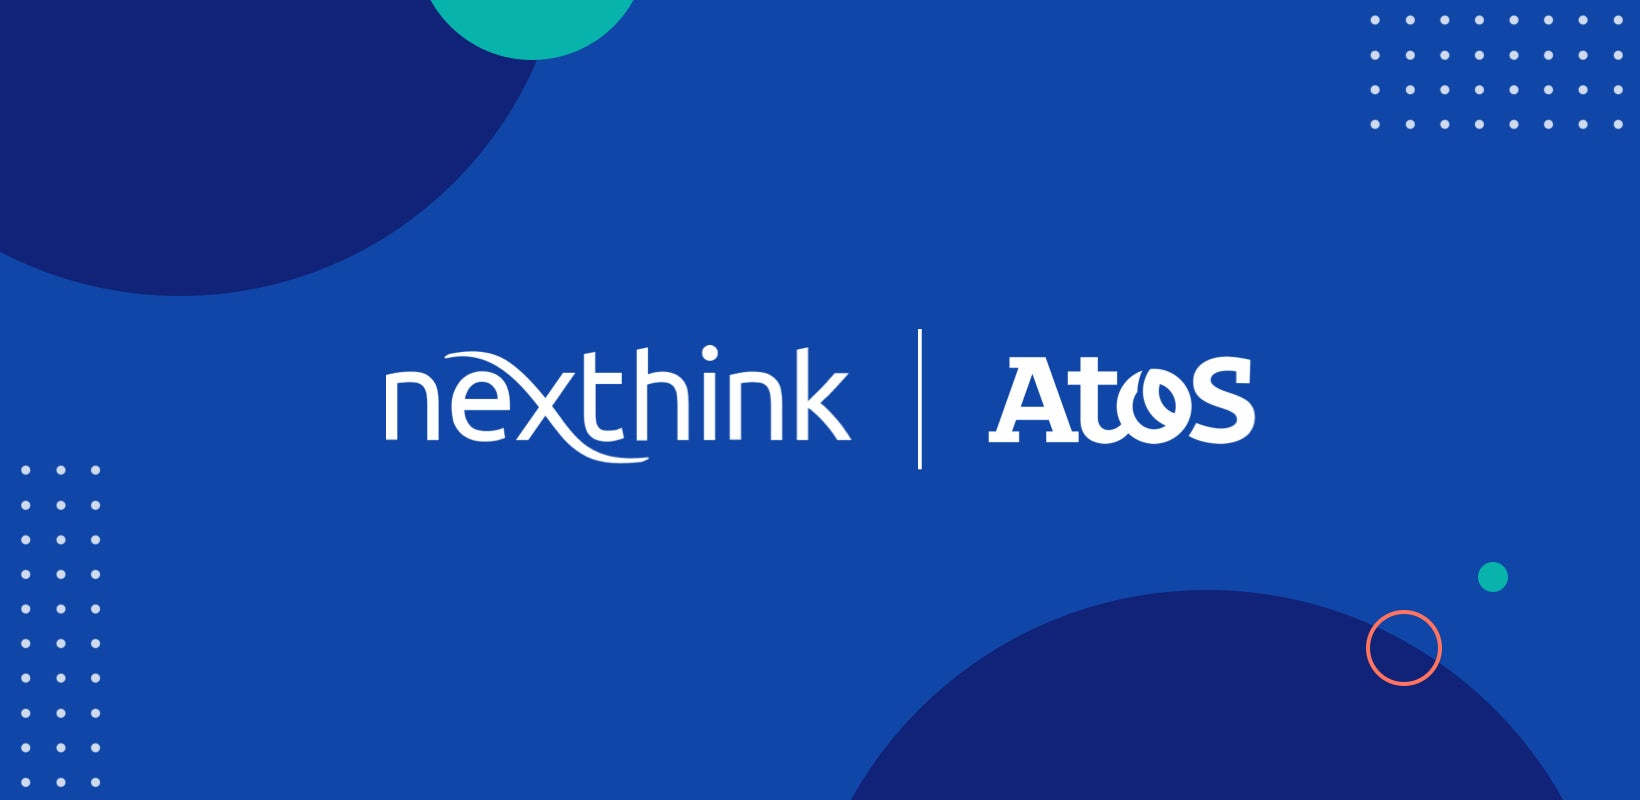 Atos Reaches 1 Million Endpoints with Nexthink, Enhancing the IT Experience of Enterprise Employees Worldwide